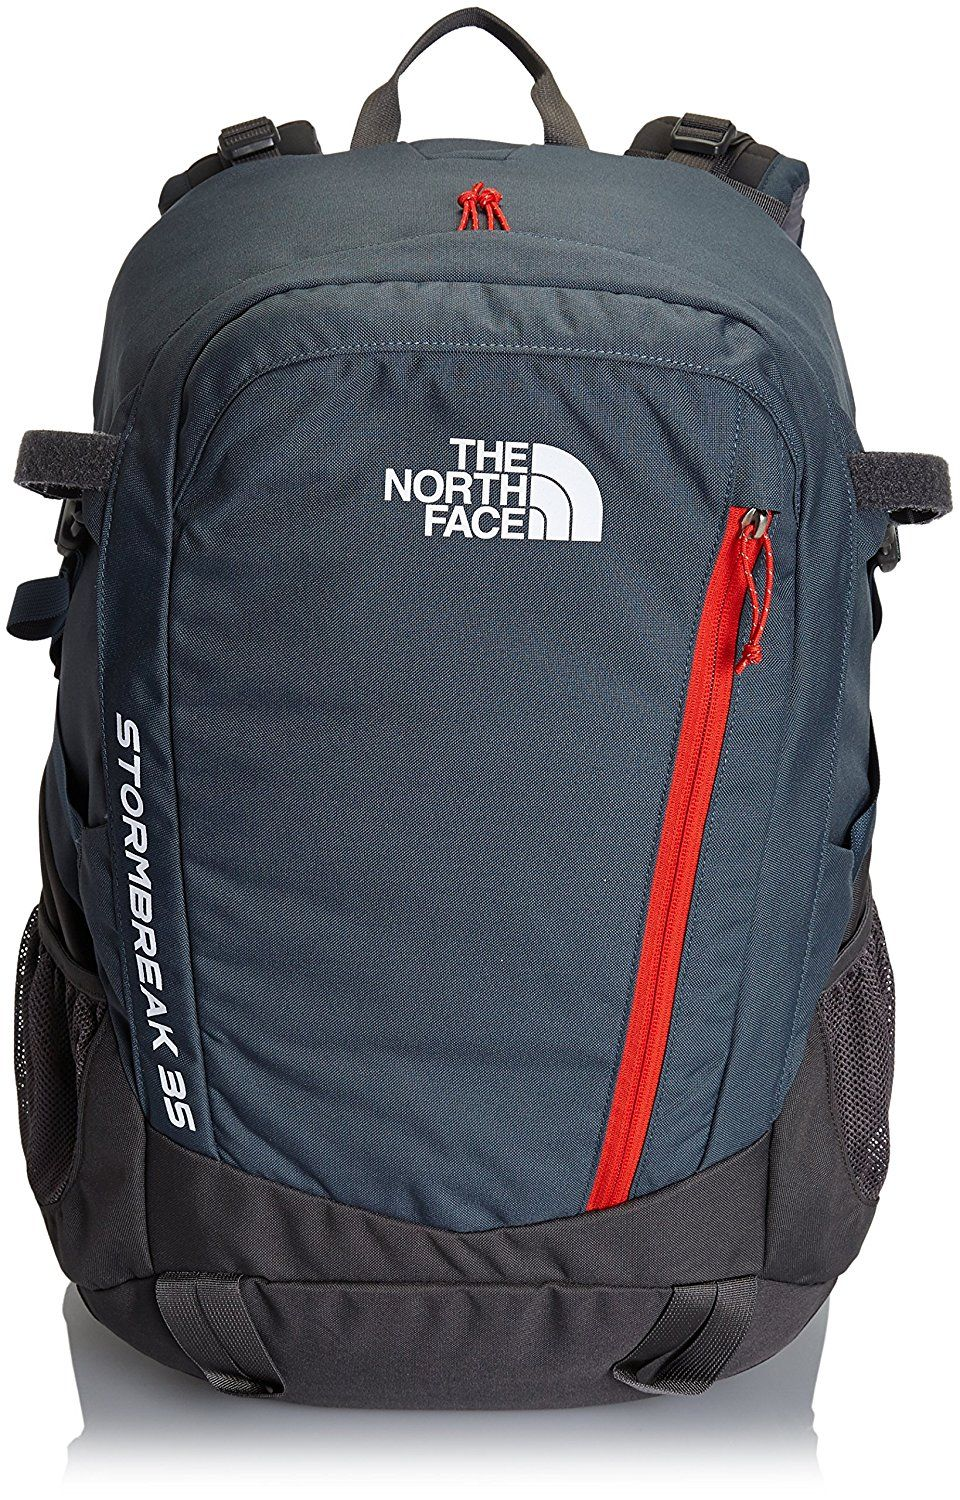 279826f856ea The North Face Stormbreak 35 Day Pack -- Insider's special review ...